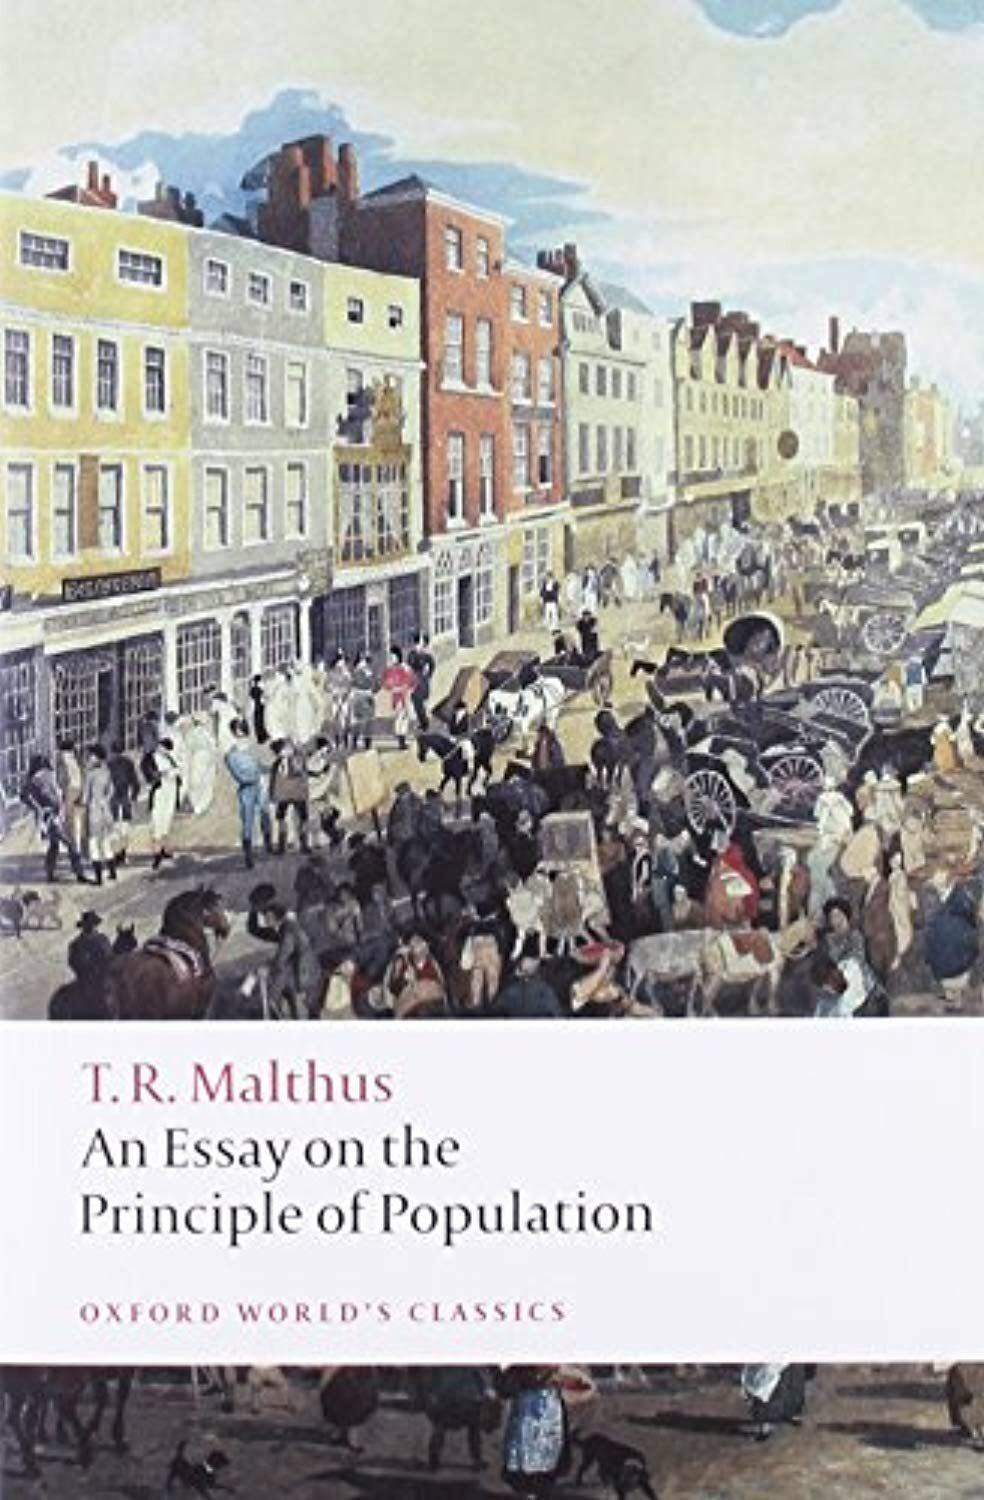 013 S L1600 Thomas Malthus An Essay On The Principle Of Population Marvelous Summary Analysis Argued In His (1798) That Full